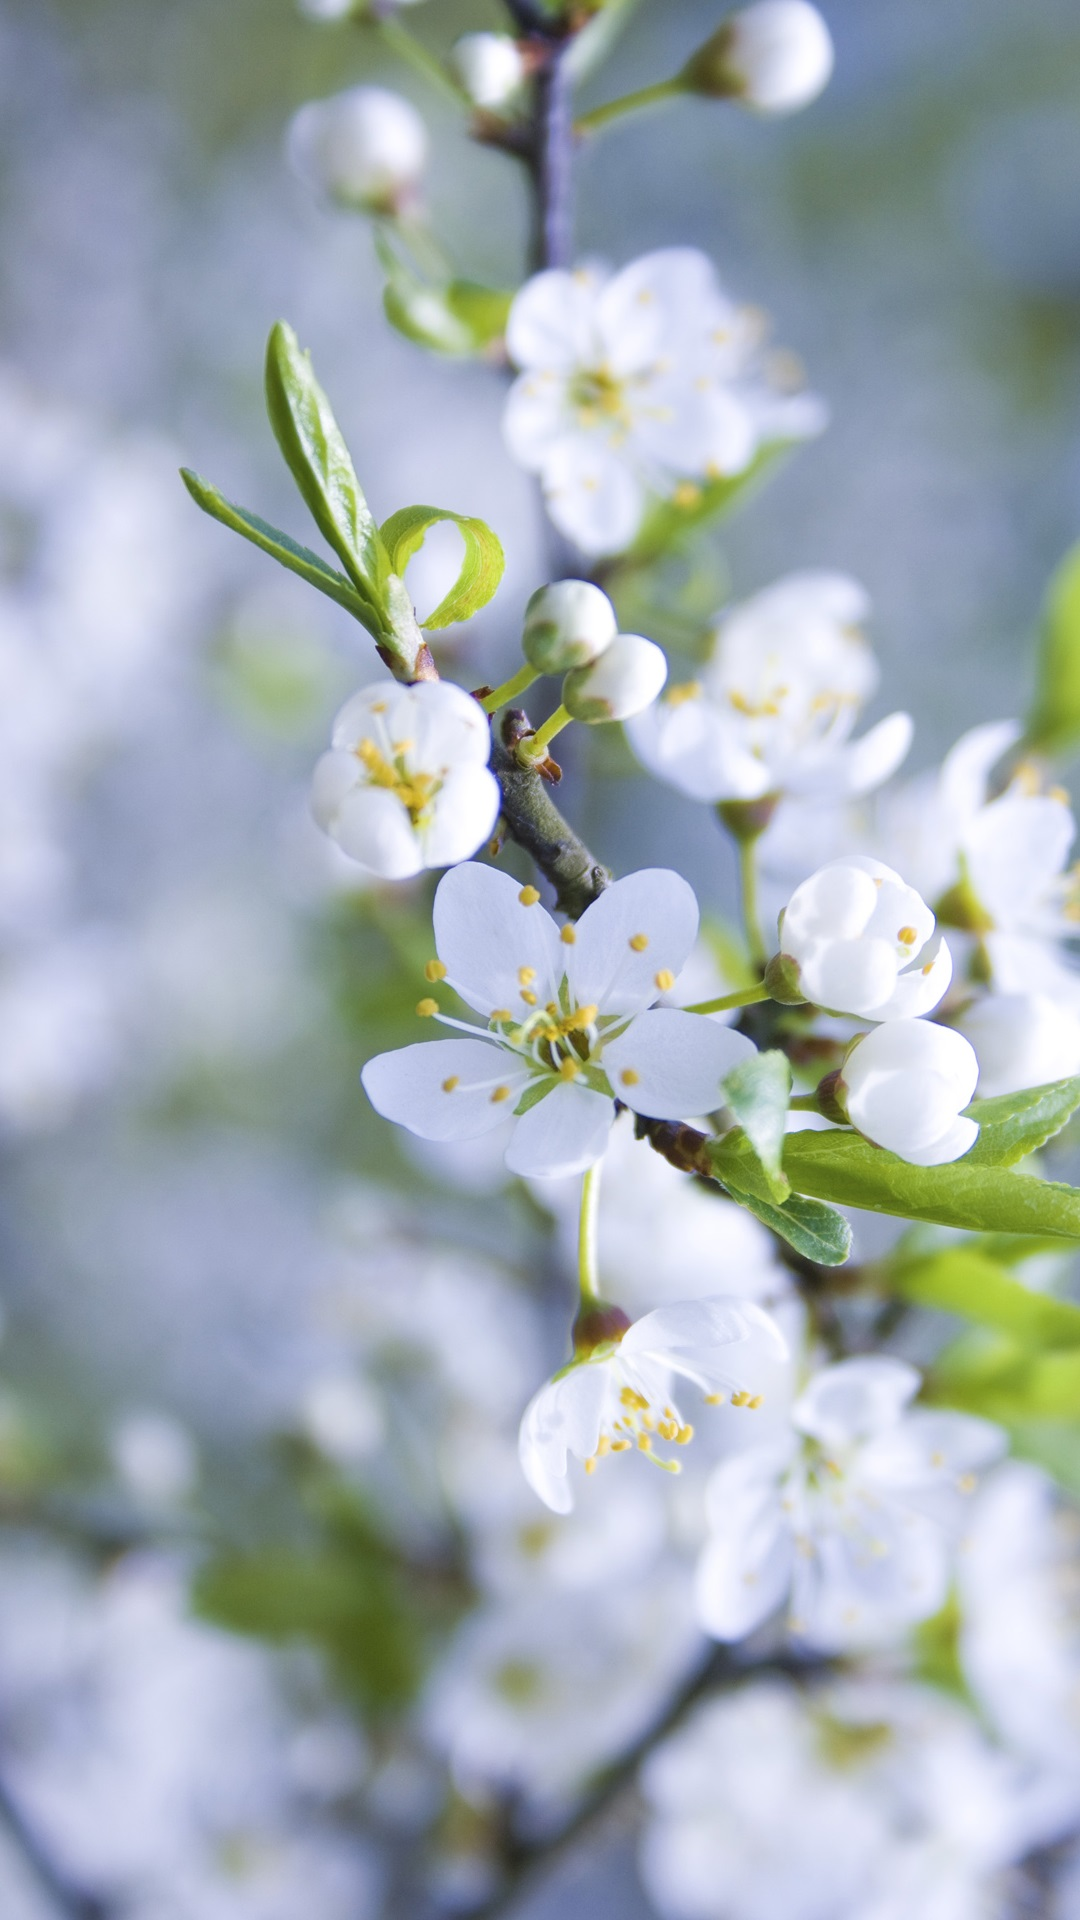 White apple flowers petals spring iphone x 8 7 6 5 4 3gs - Flower wallpaper iphone 8 plus ...